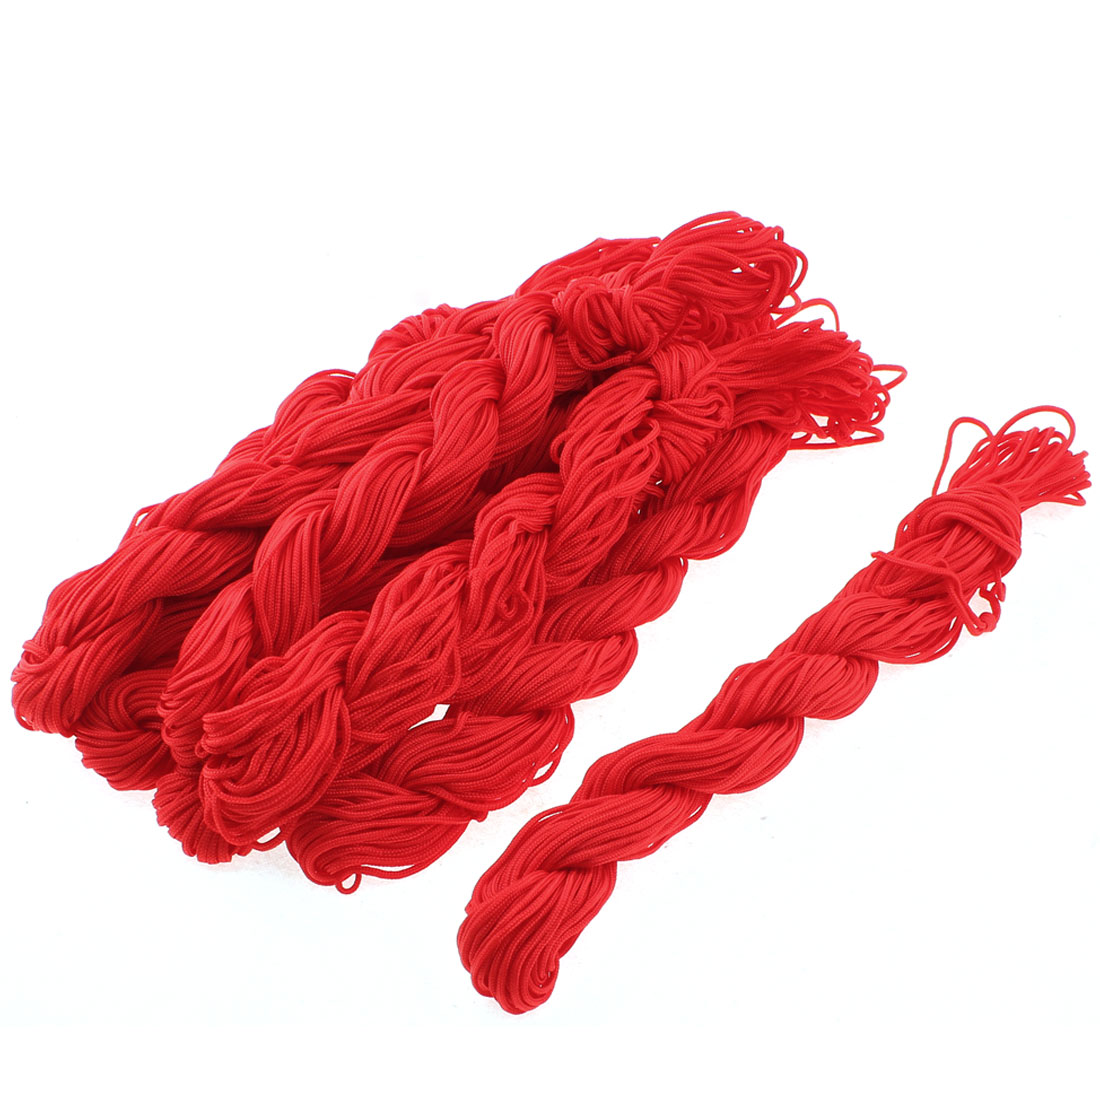 2M Length 2mm Dia Chinese Knotting Bracelet Jewelry Bead Thread String Red 10pcs